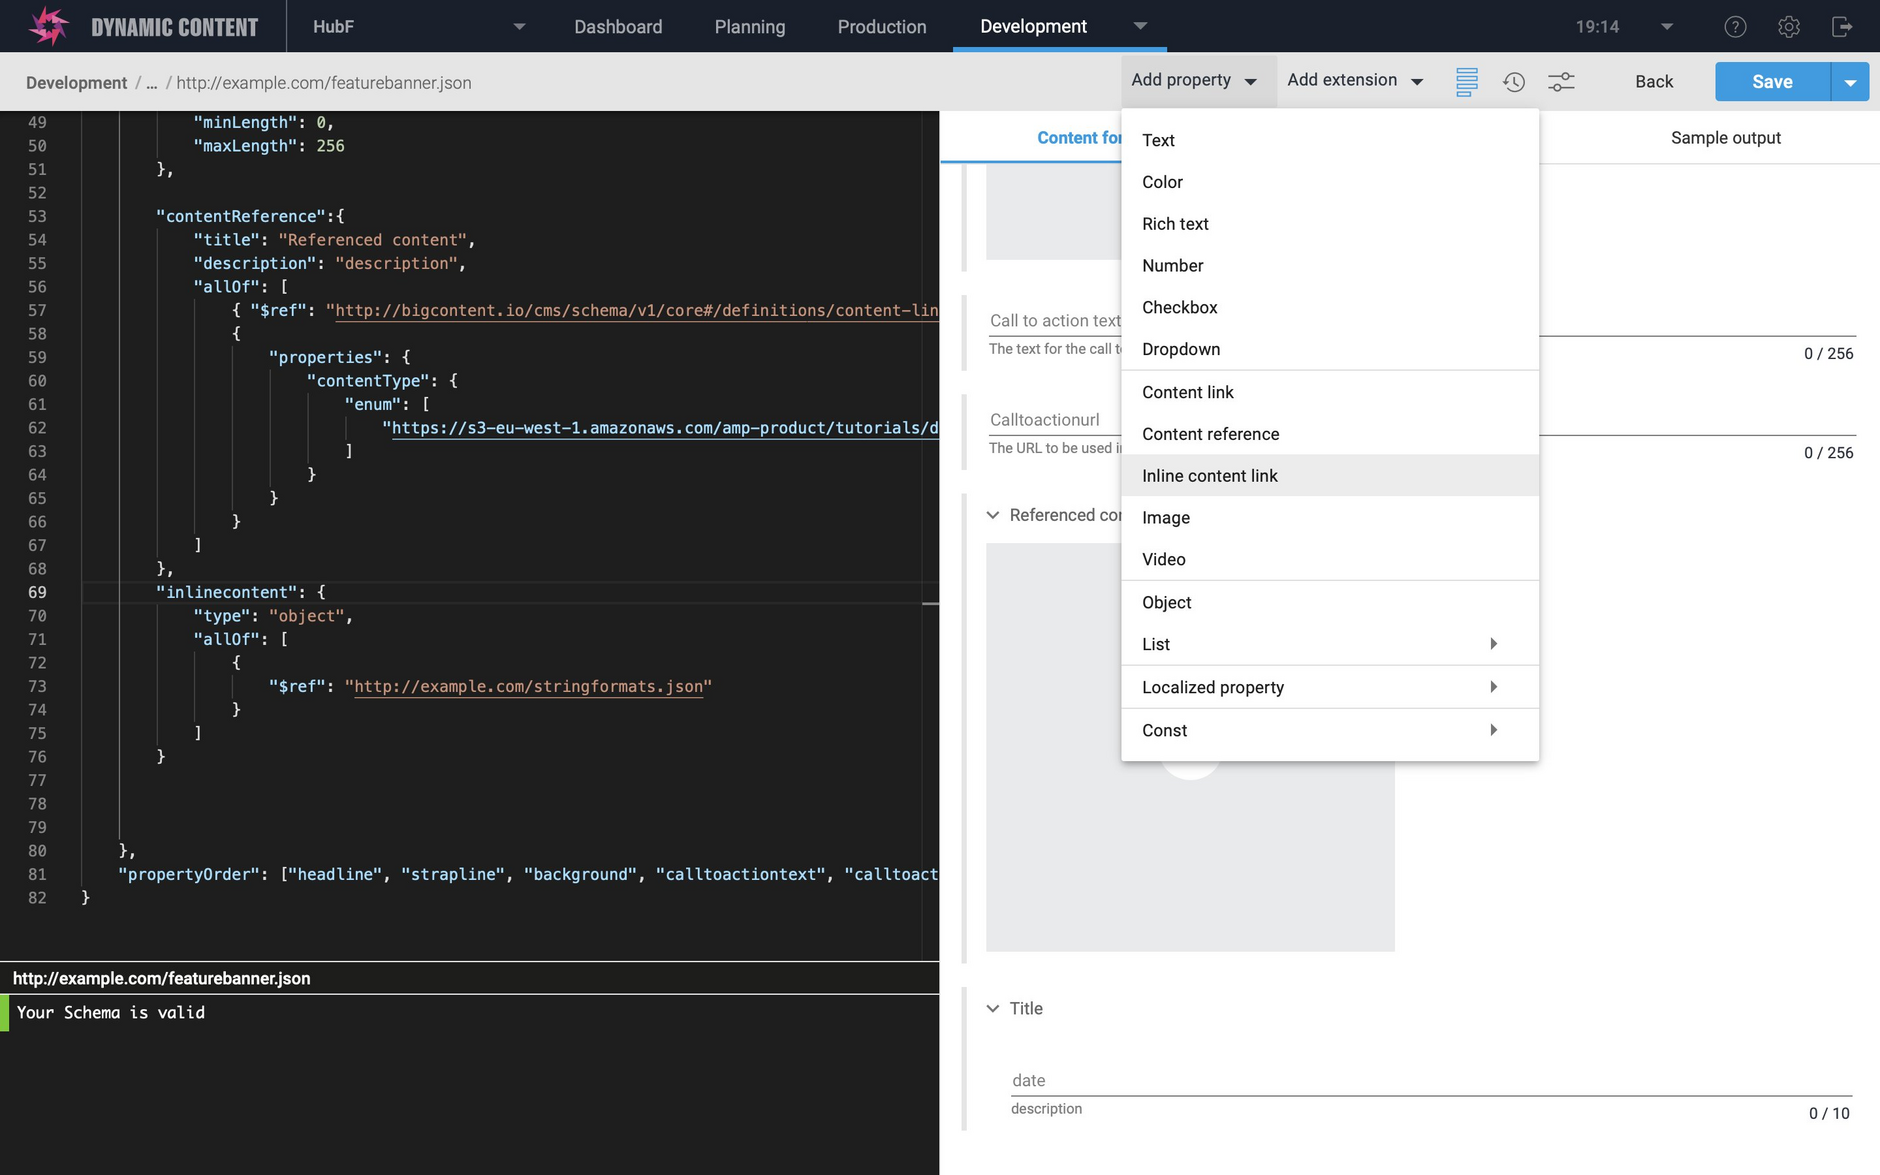 The schema editor has been updated to allow you to quickly add an inline content link property